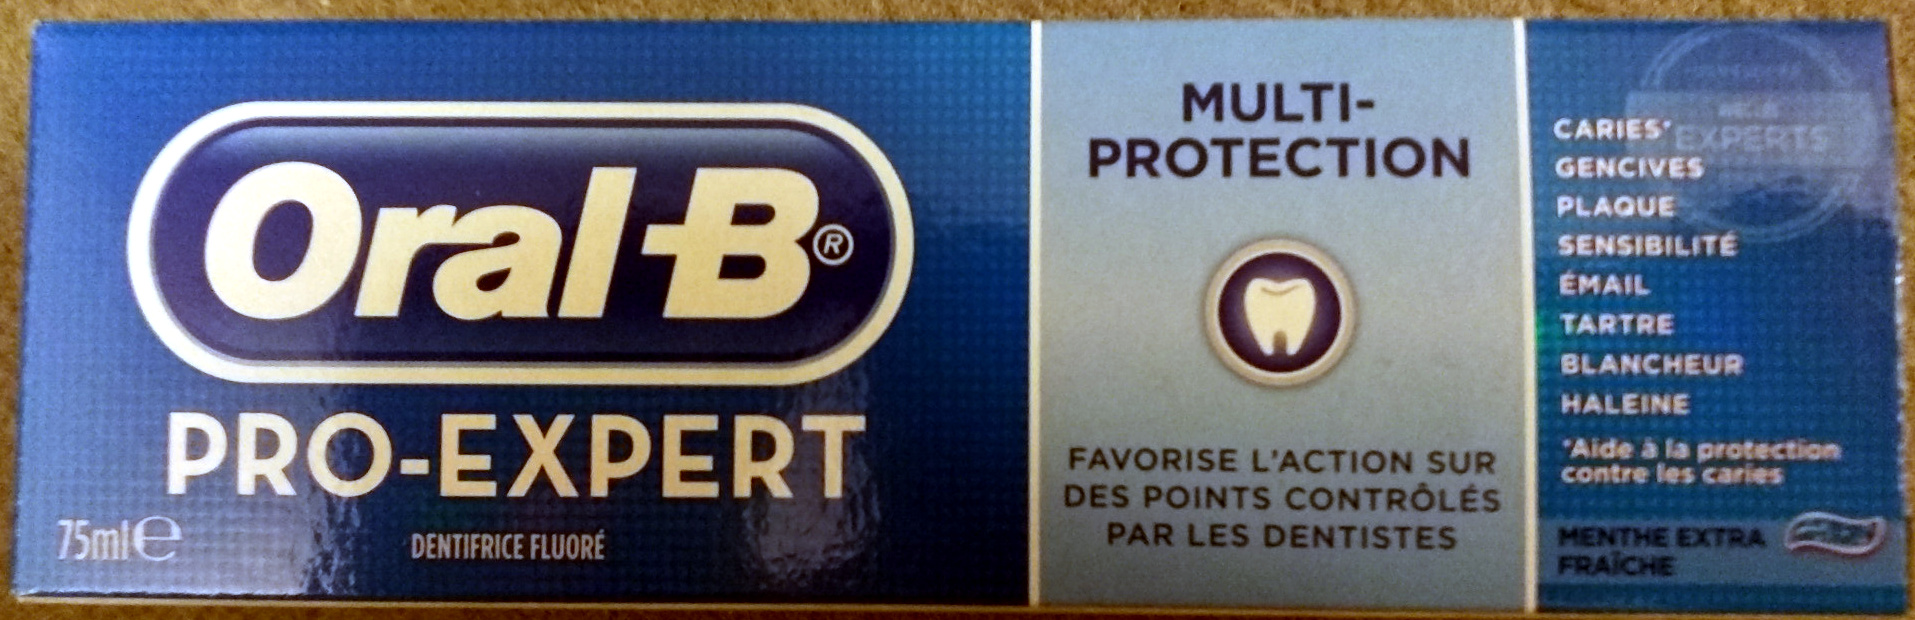 Pro-Expert Multi-Protection - Product - fr